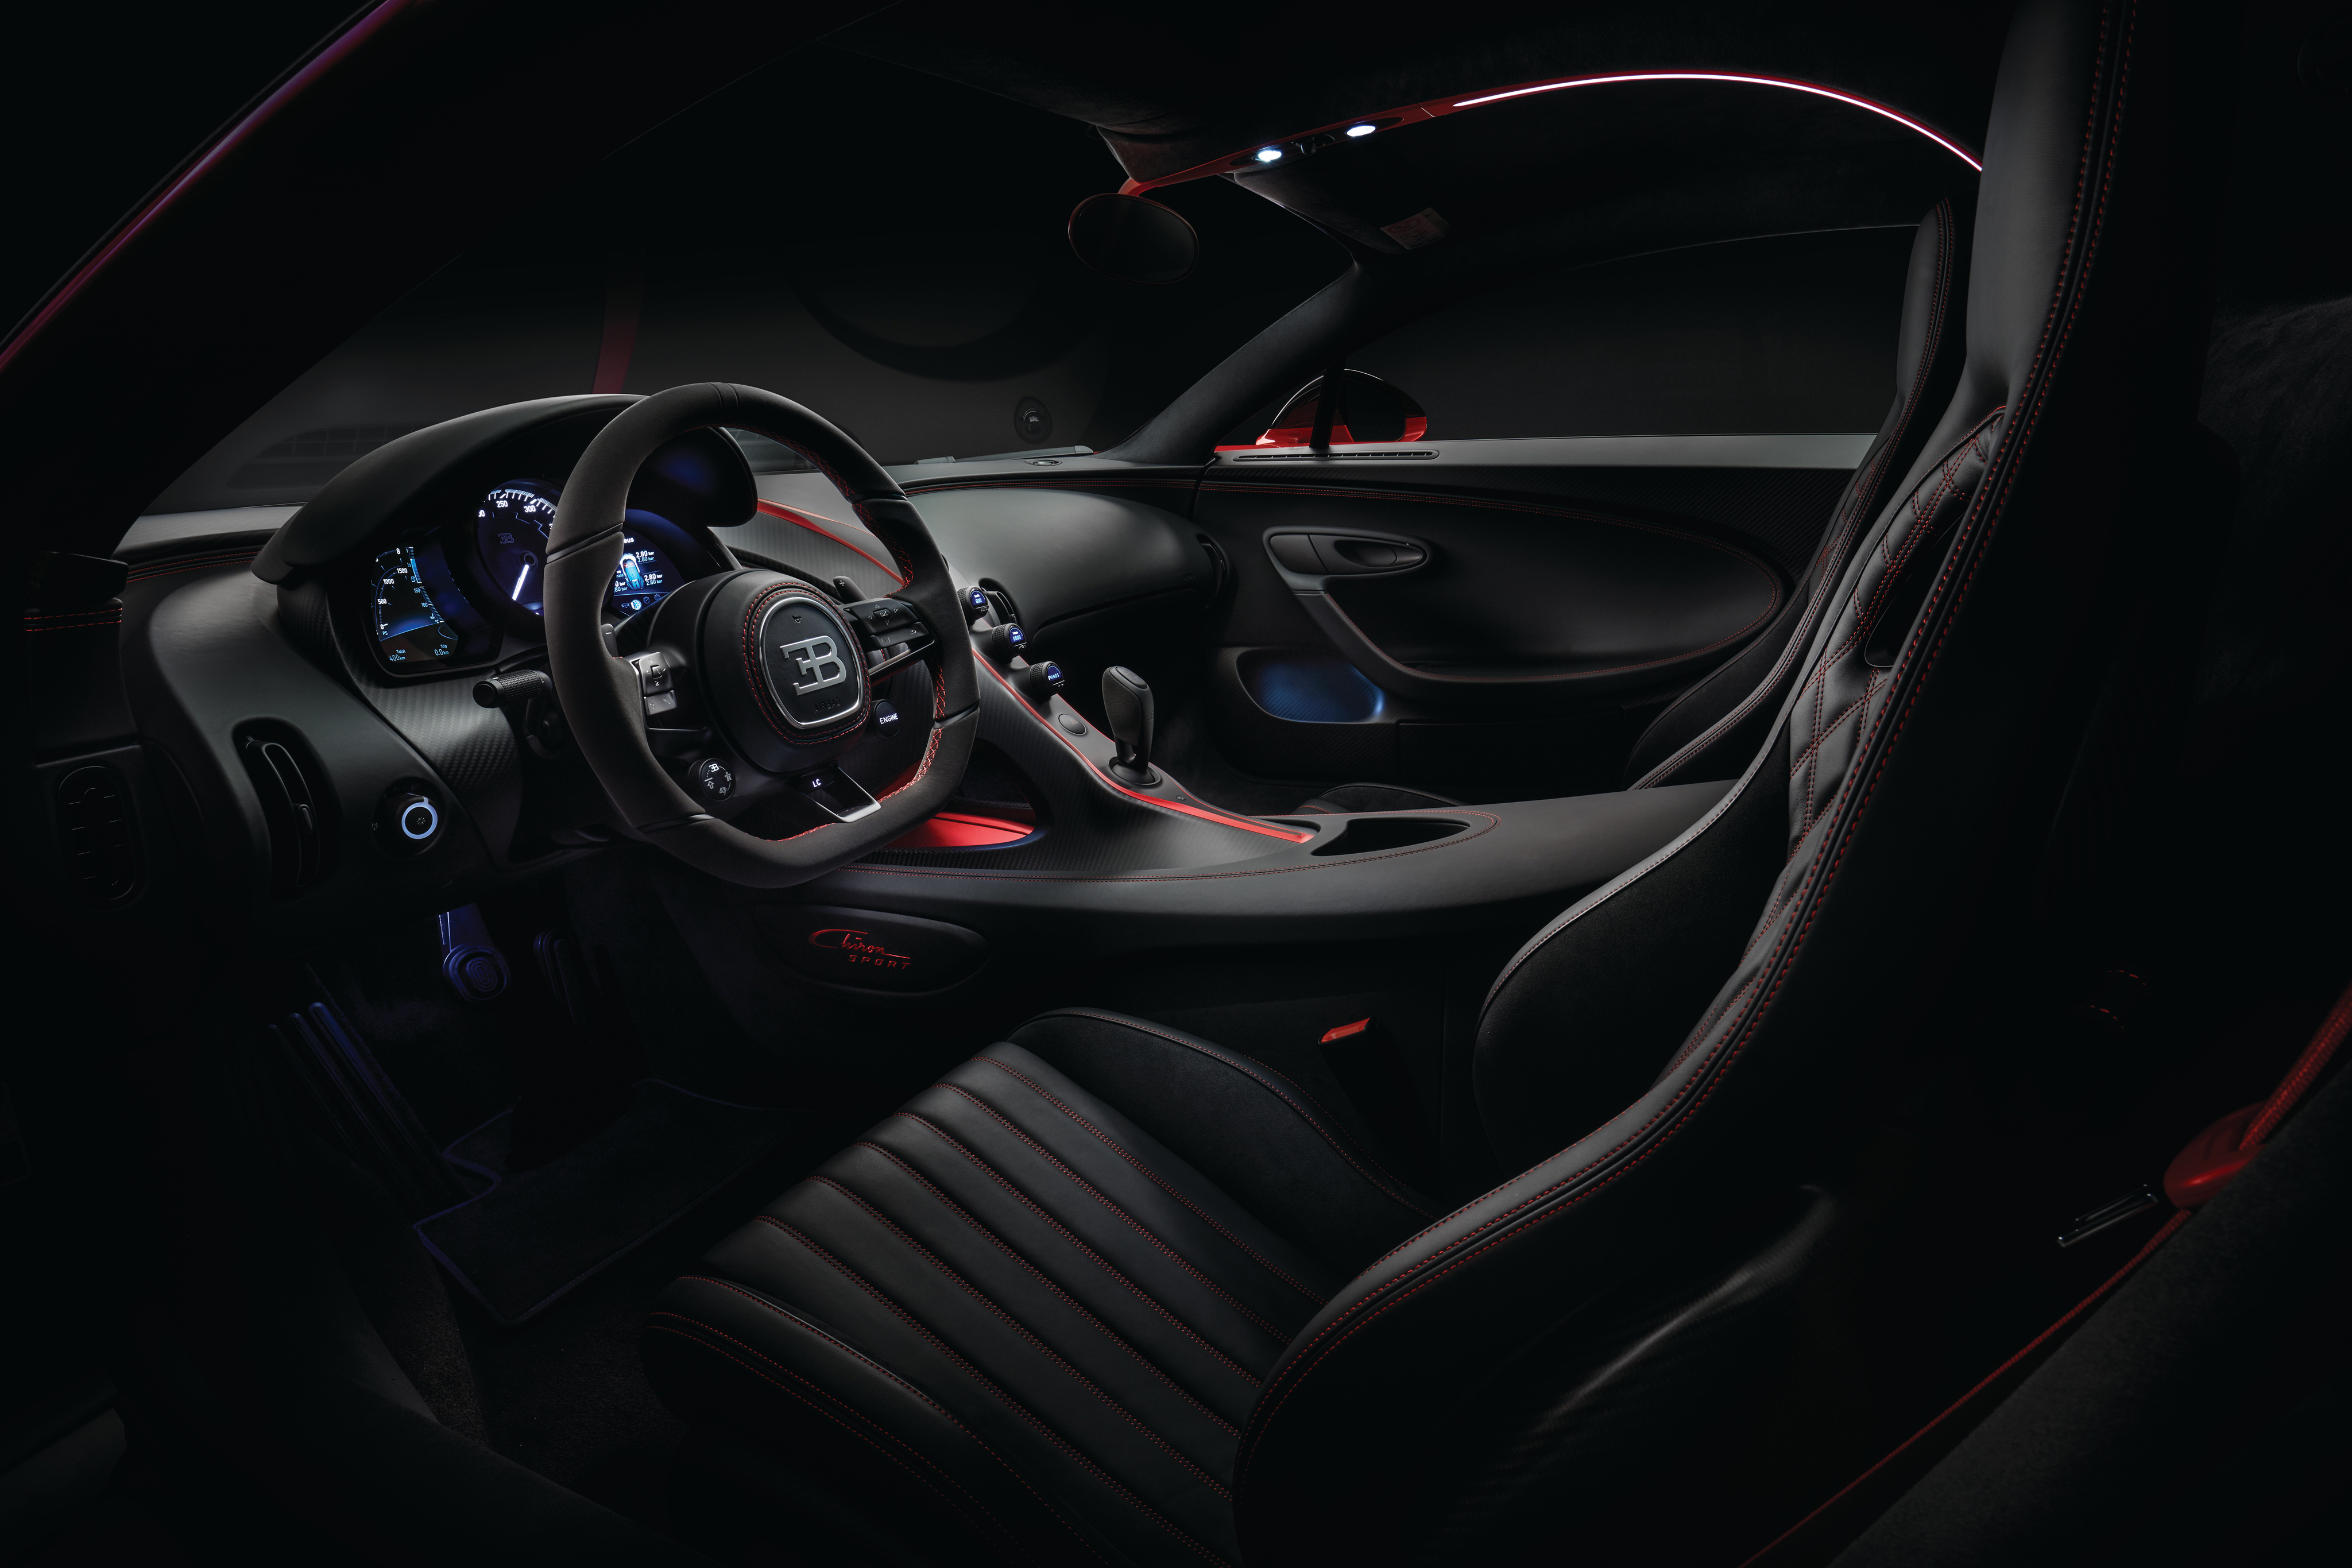 Bugatti Chiron Interior 2018 4k Hd Cars 4k Wallpapers Images